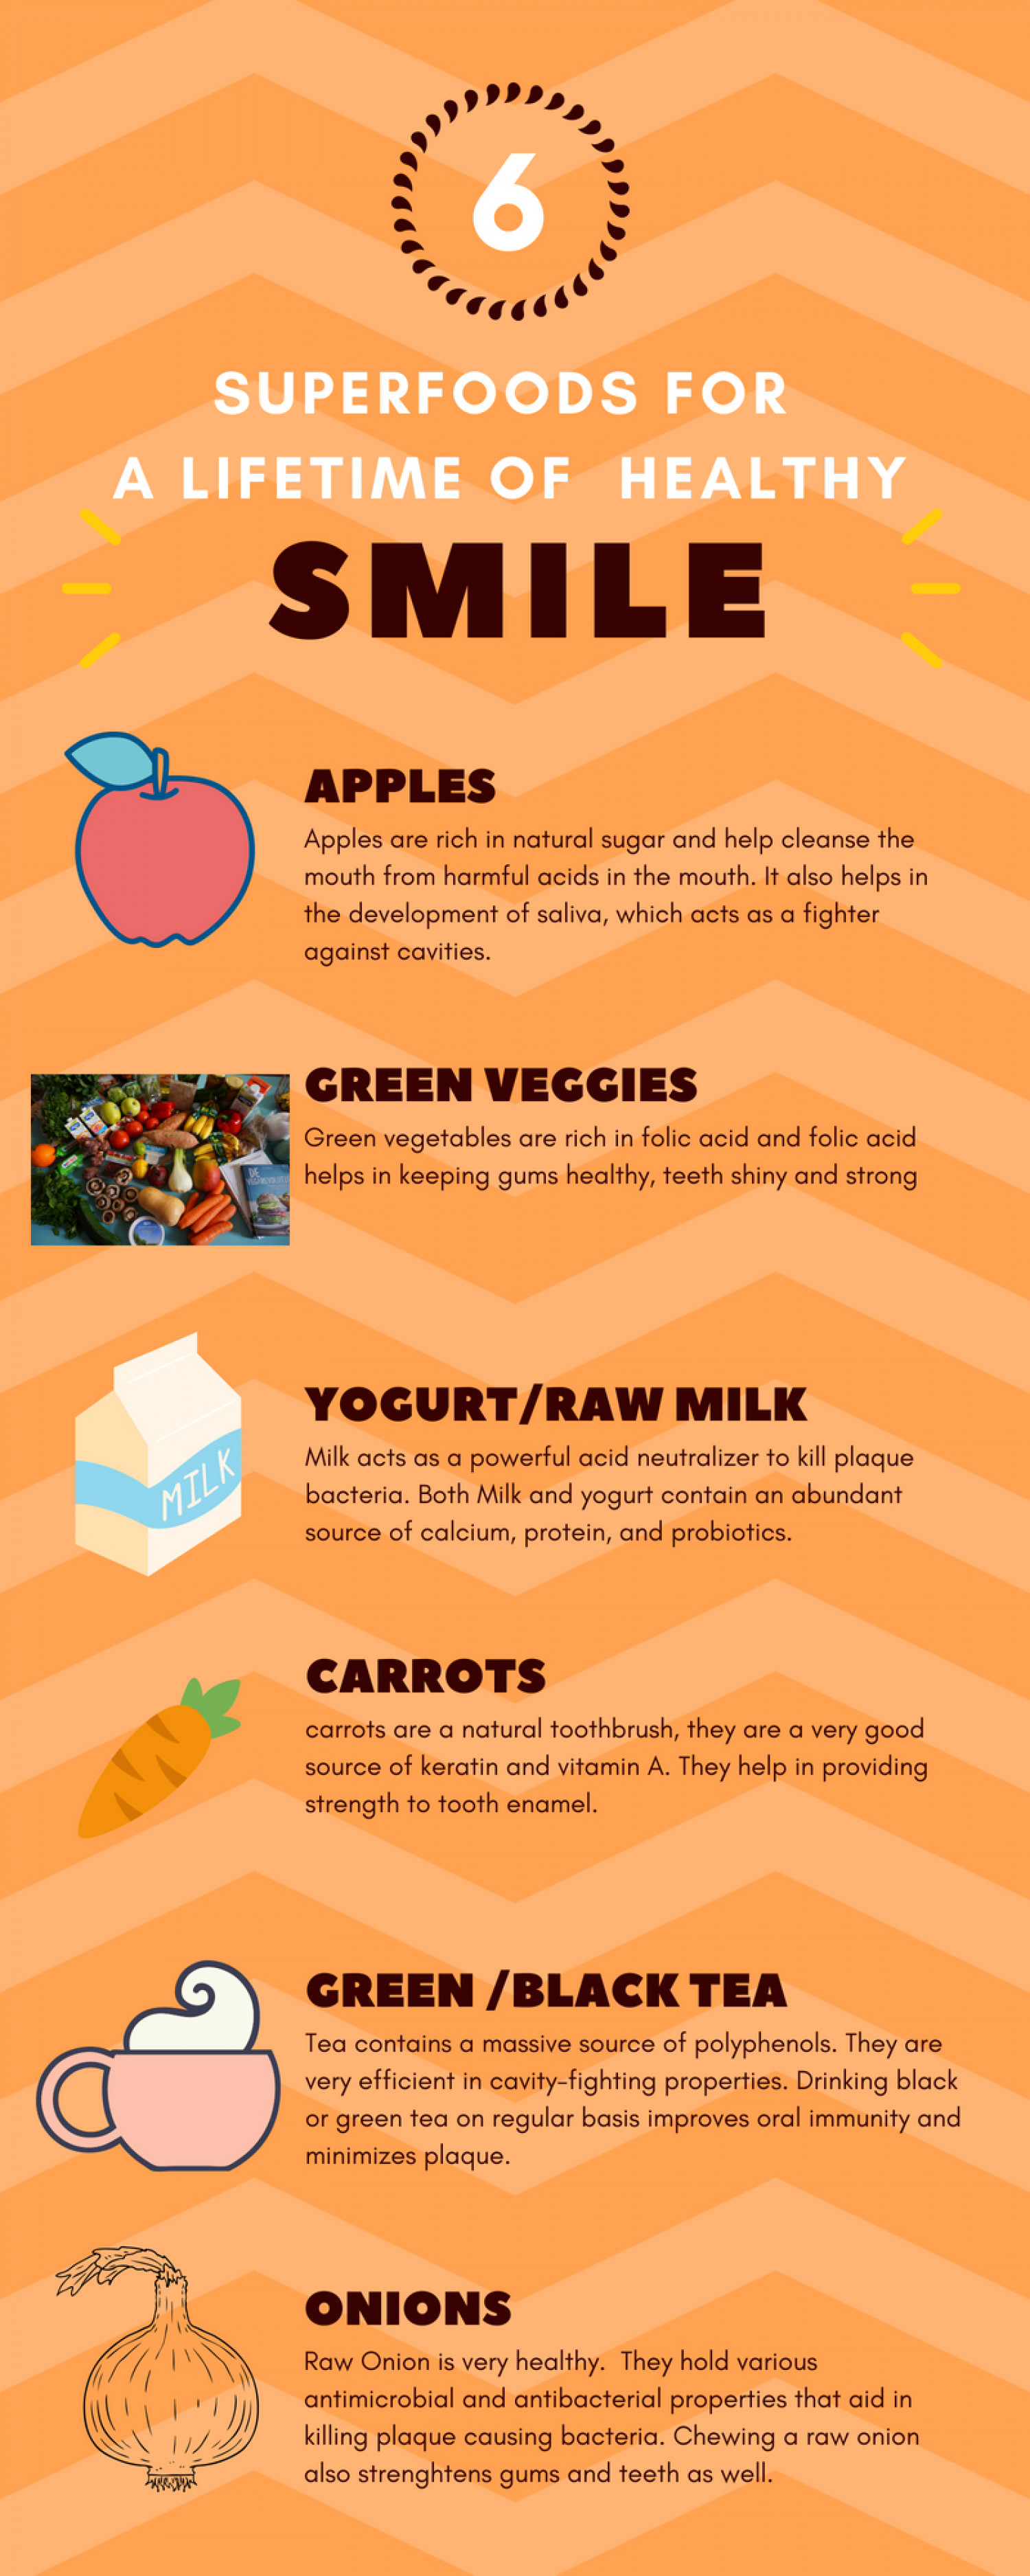 6 Superfoods to Chew On For A Lifetime of Healthy Smile: By Dr. Siddharth Jain (BDS, MDS) Infographic